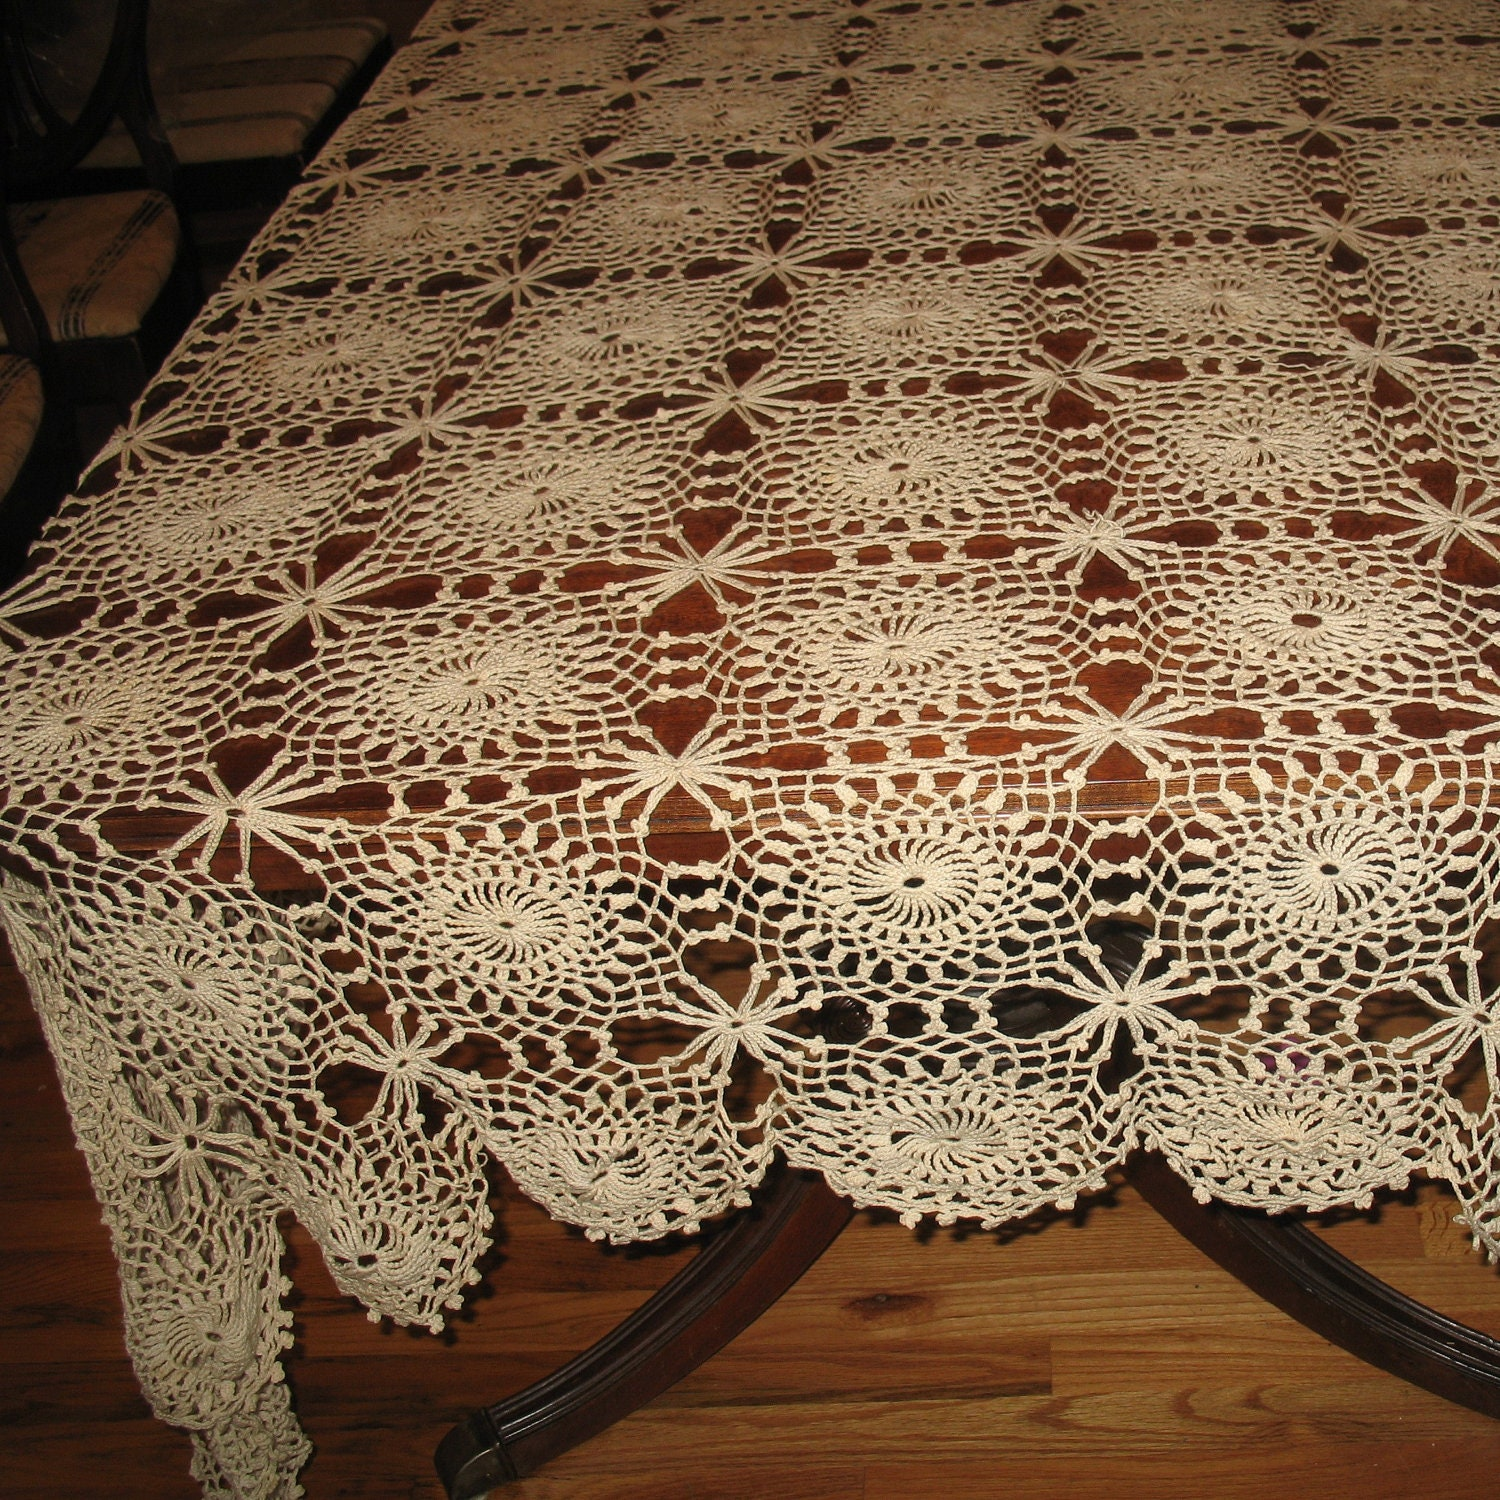 Hand Crochet : Vintage Hand Crocheted Tablecloth Lacy Crochet by CraftItVintage